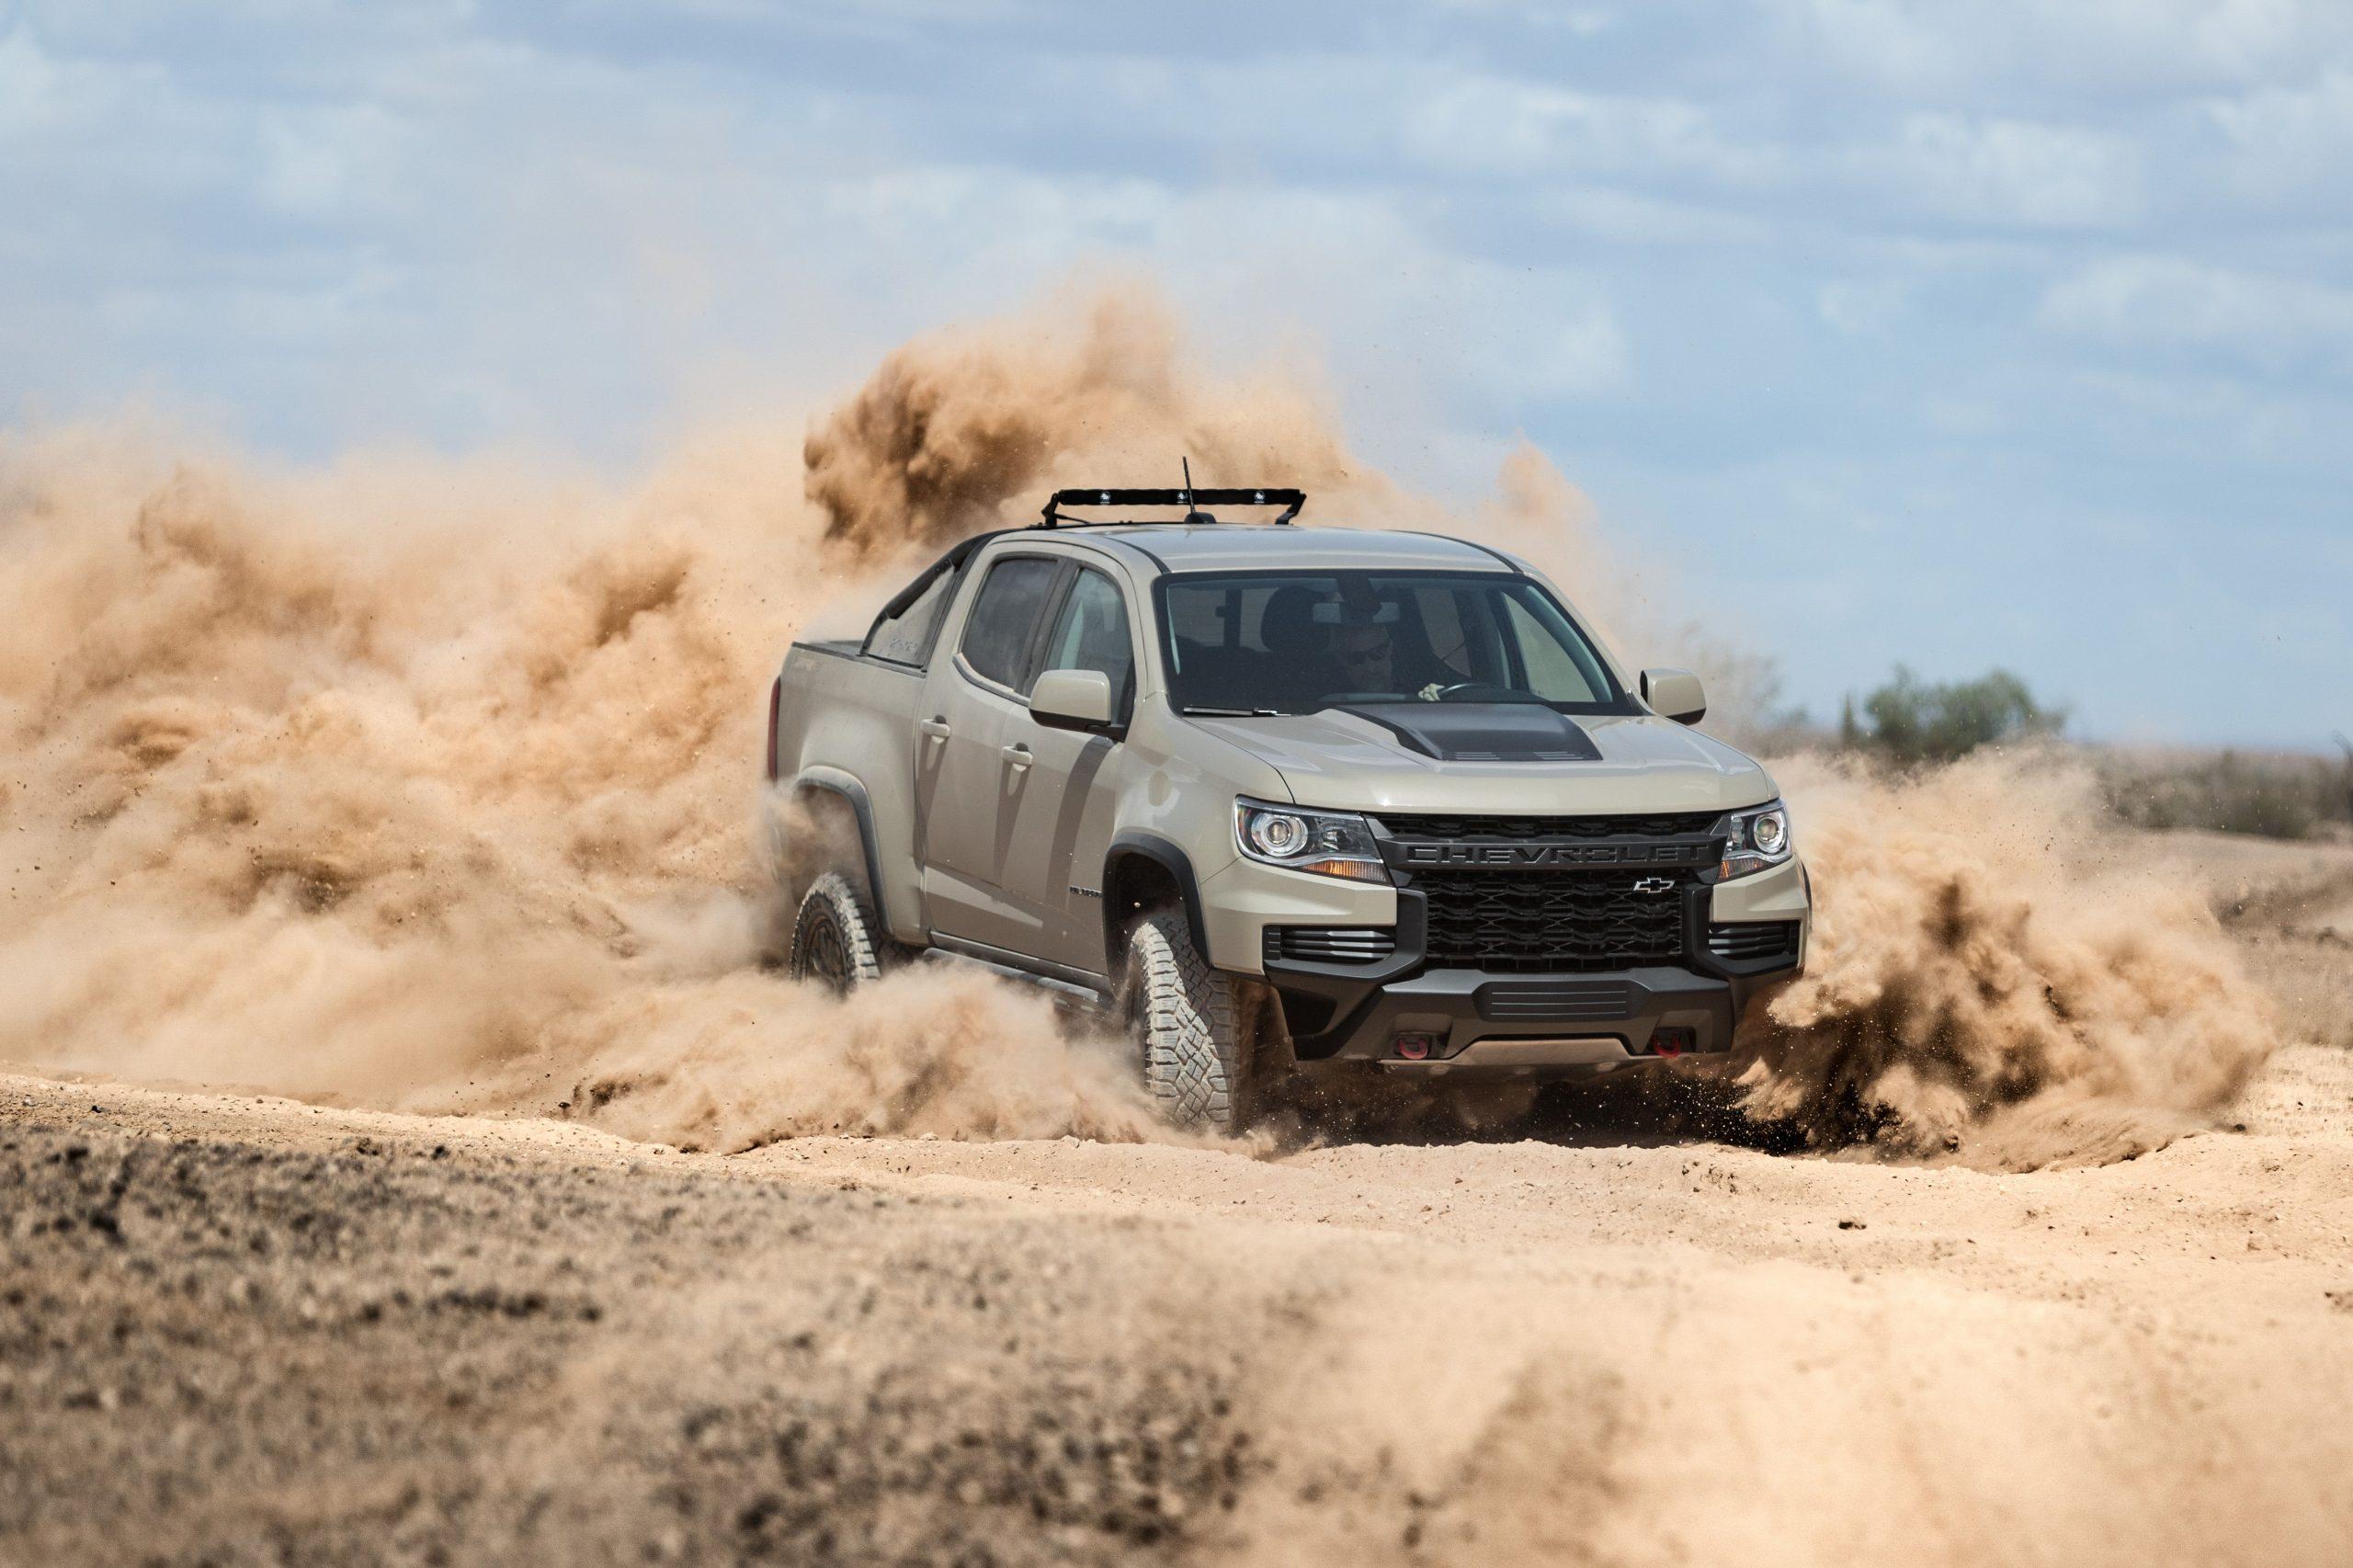 Comments On: Chevy Colorado Will Look A Little Cooler For Running Boards For 2021 Chevy Colorado Crew Cab